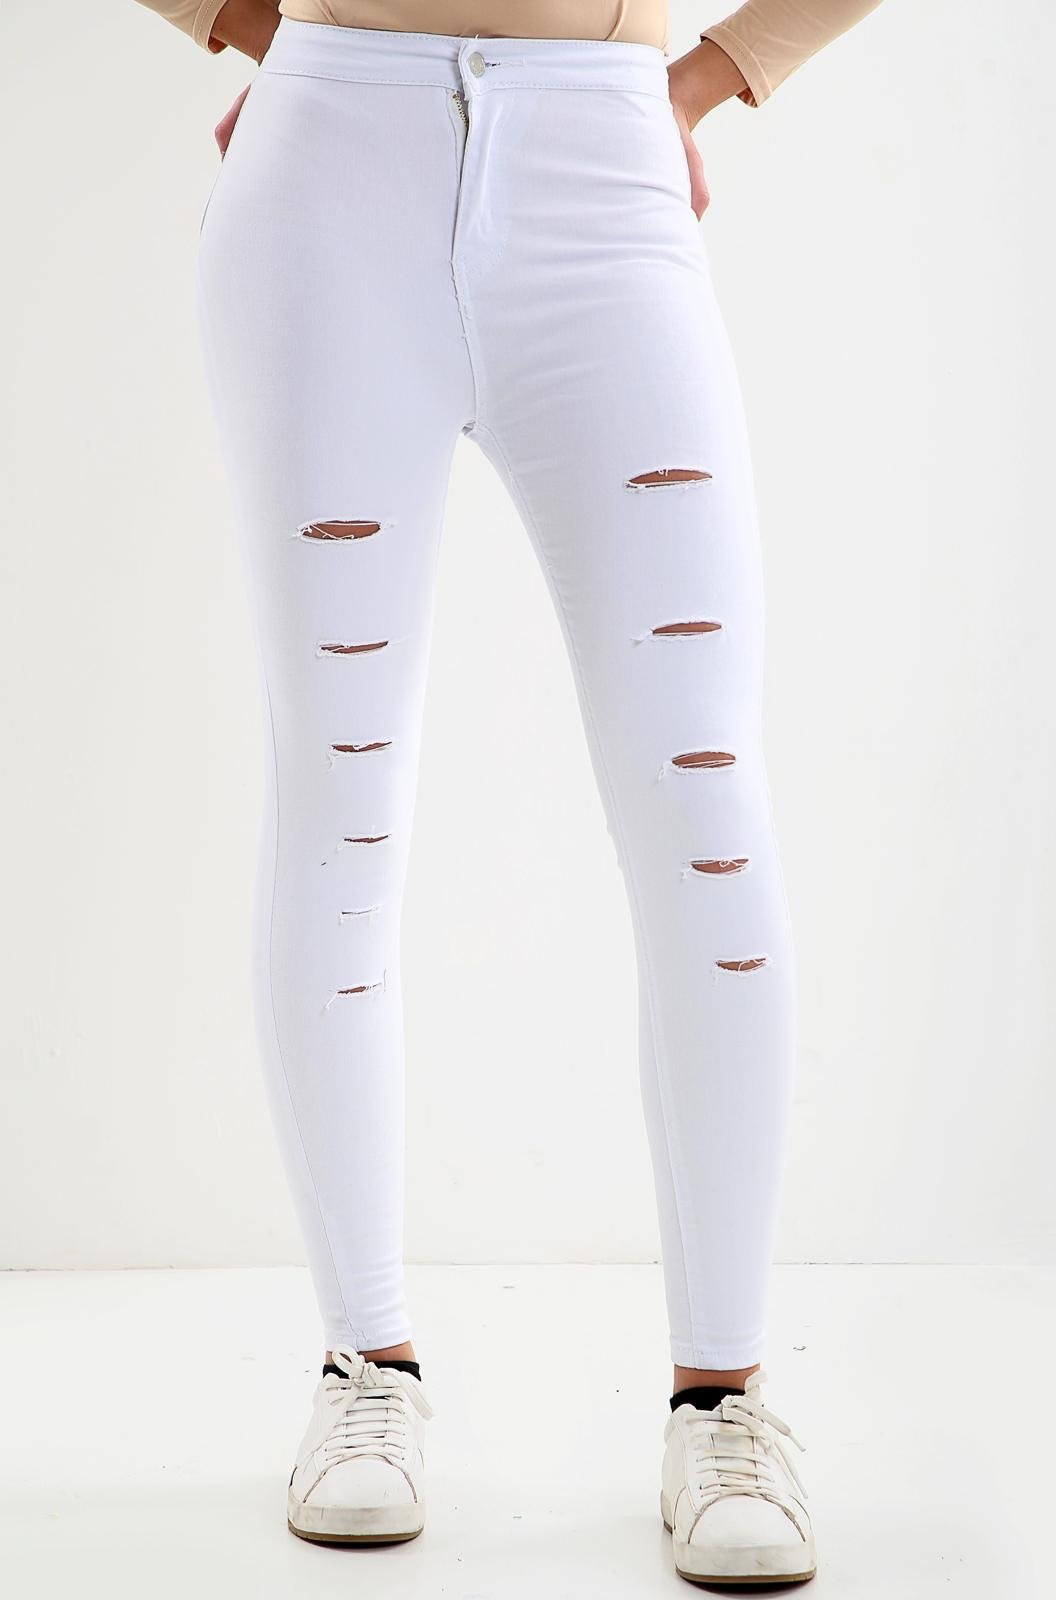 White Multi-cut ladies high waisted jeans